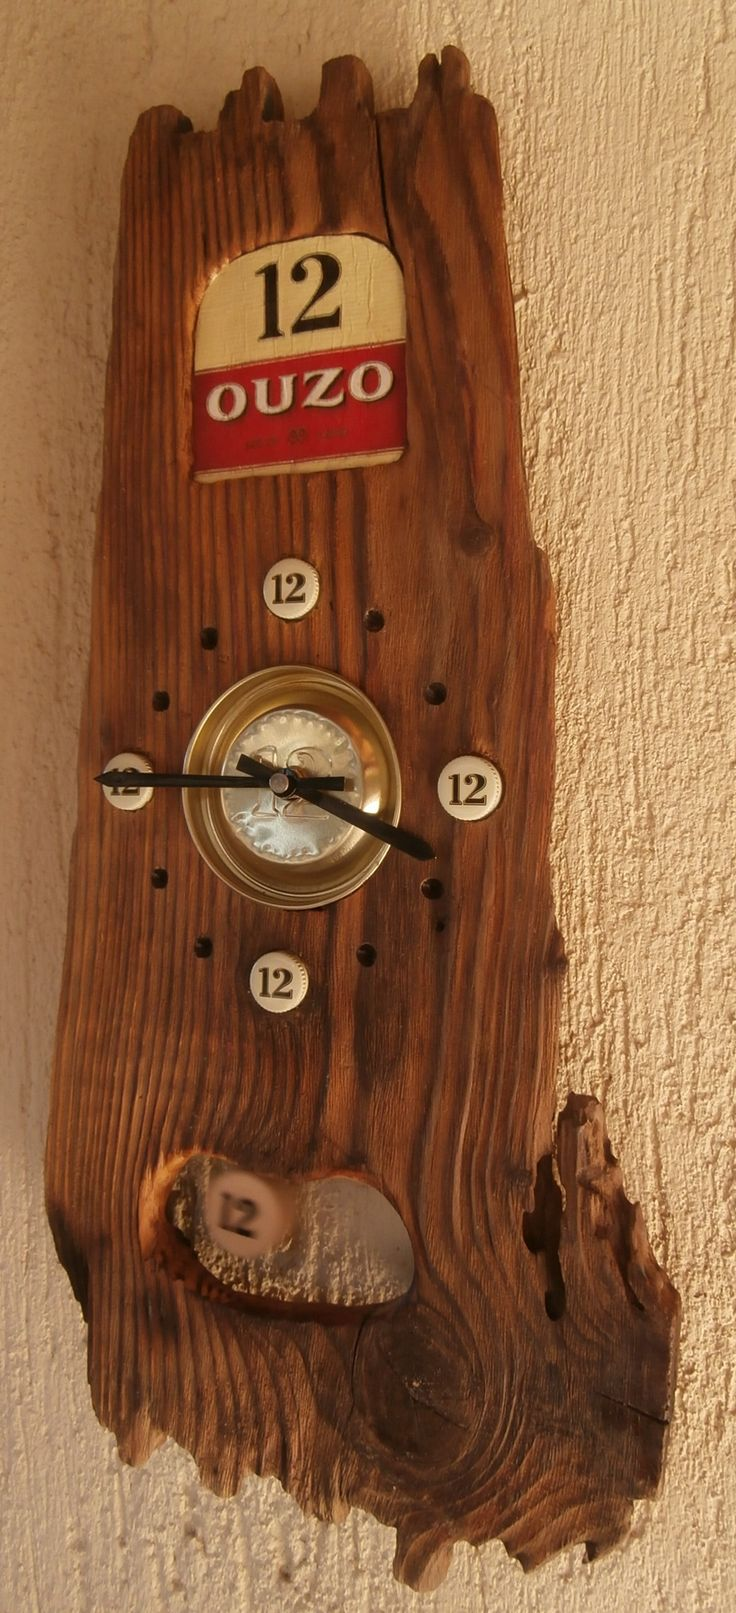 63 best driftwood upcycled clocks images on pinterest driftwood ouzo 12 brand clock amipublicfo Image collections